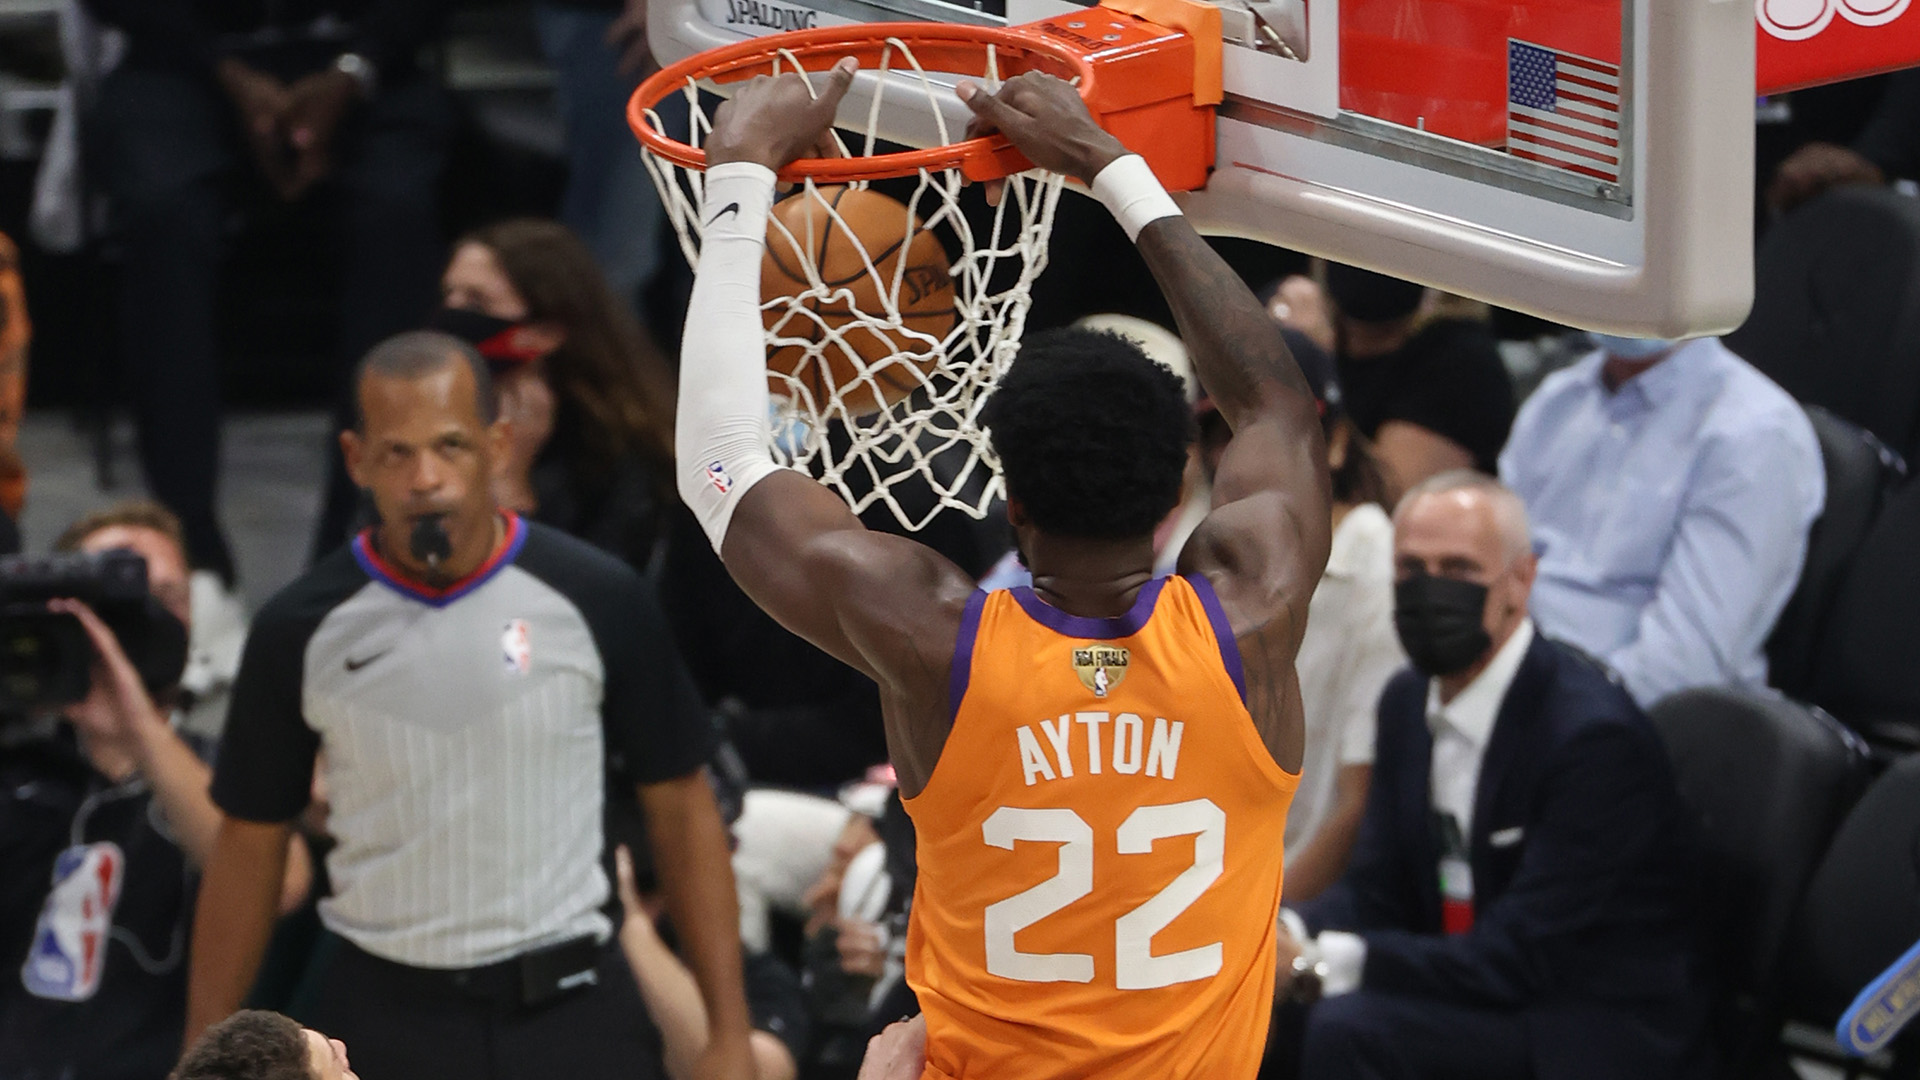 Chris Paul throws perfect alley-oop to Deandre Ayton